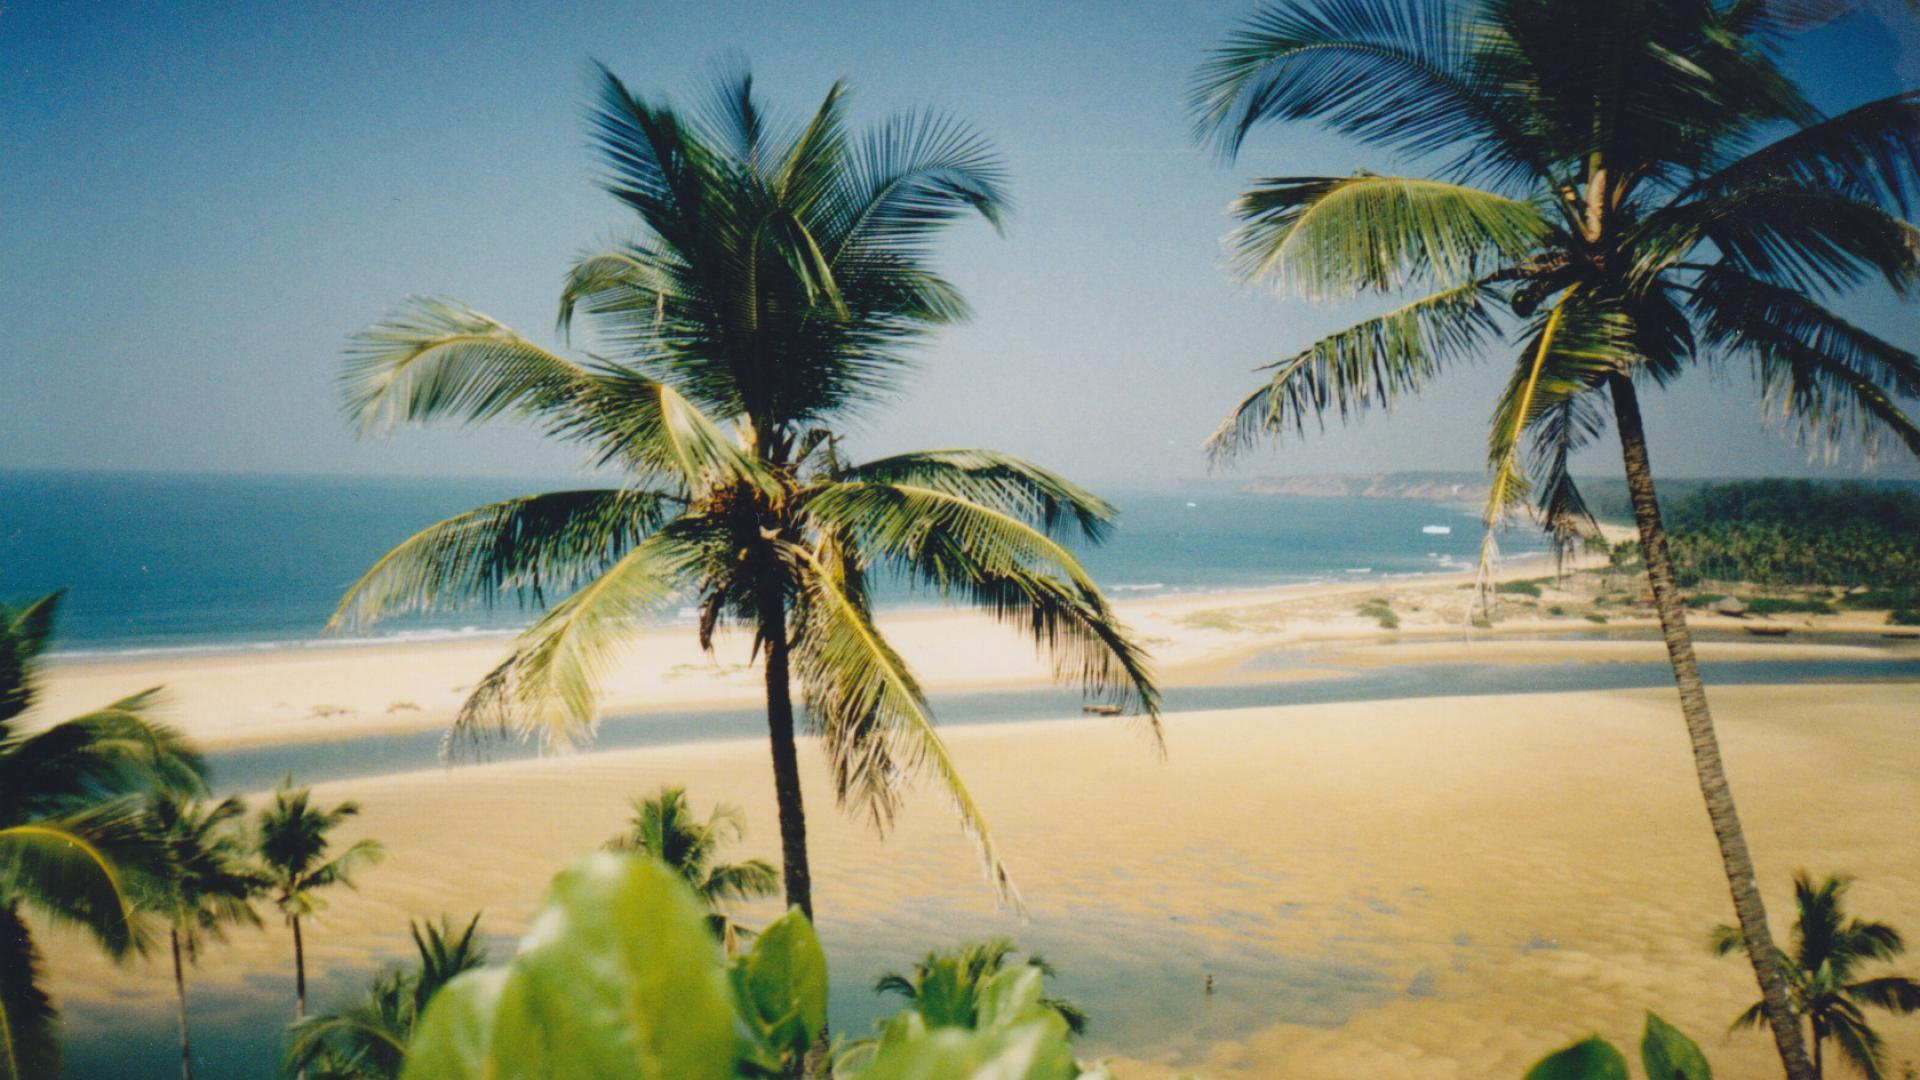 Palms and the beach in Goa, India